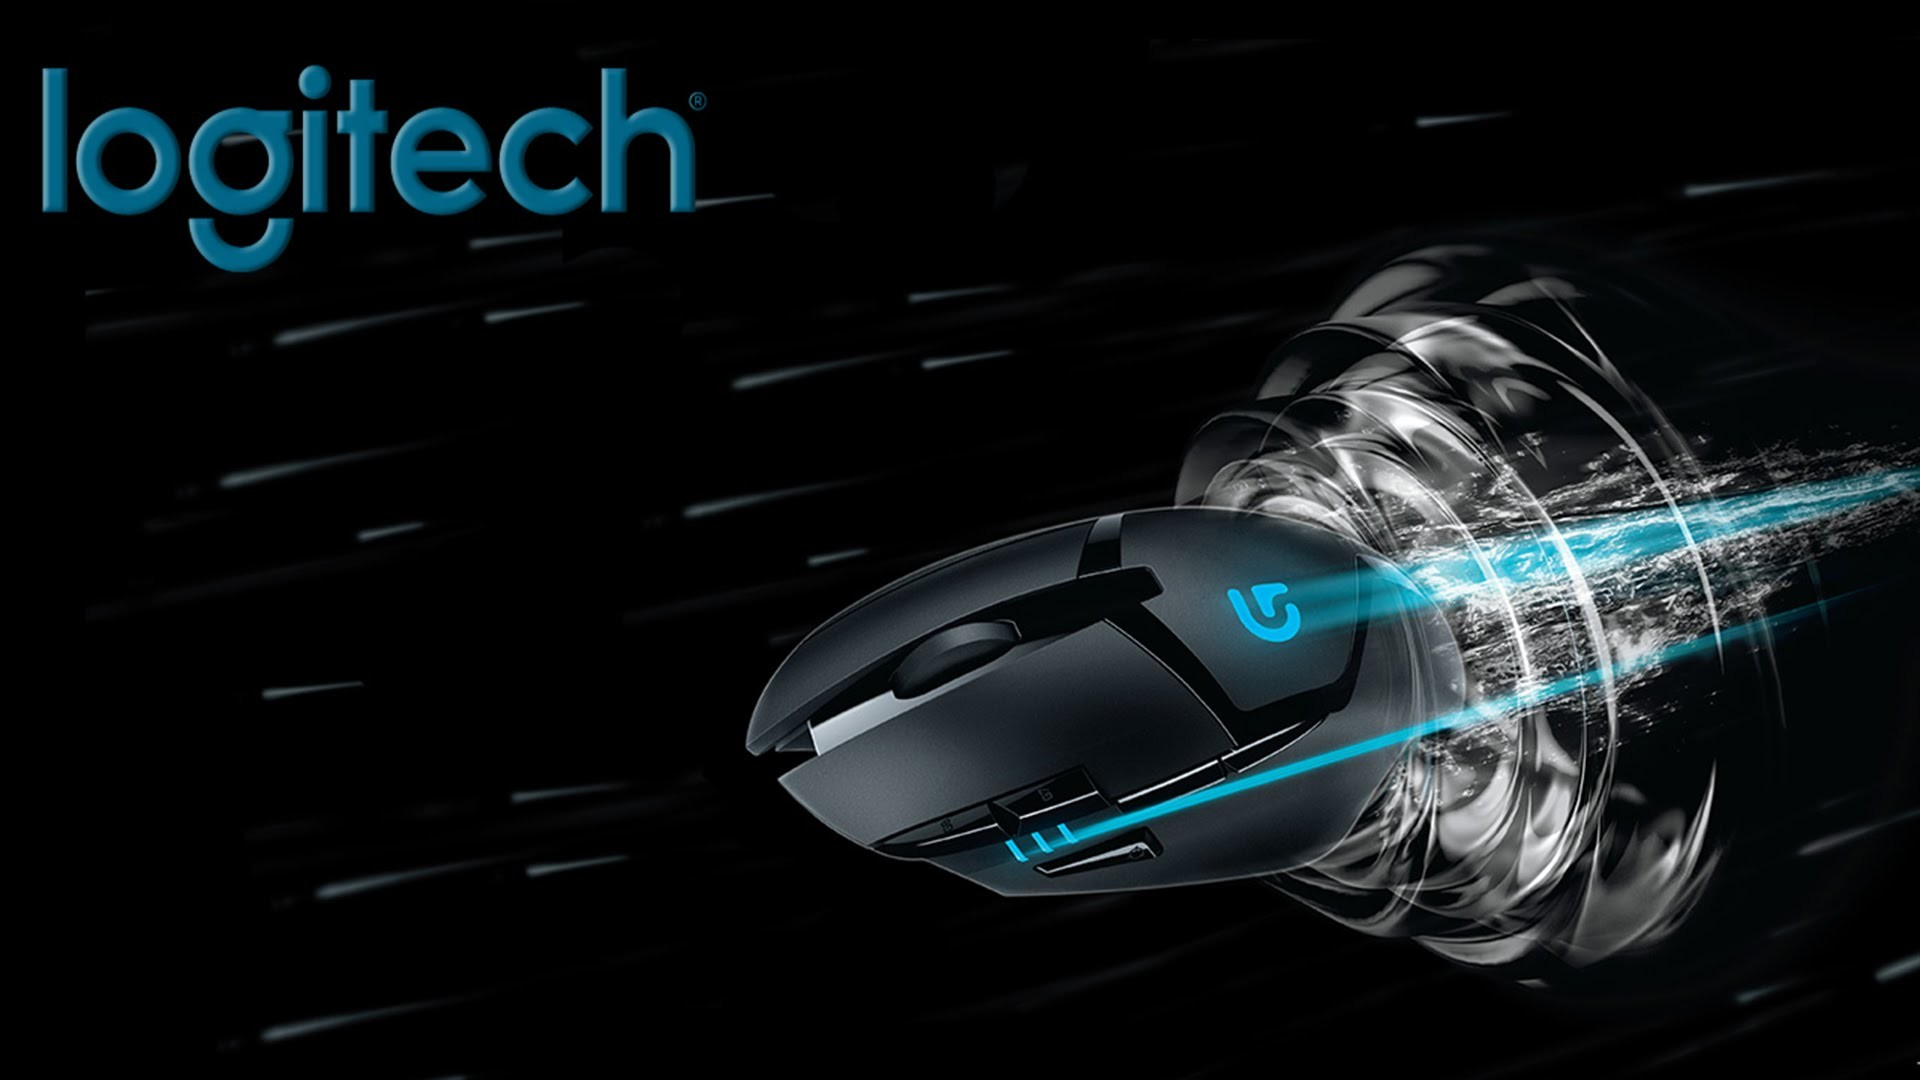 Logitech Wallpapers (74+ images)